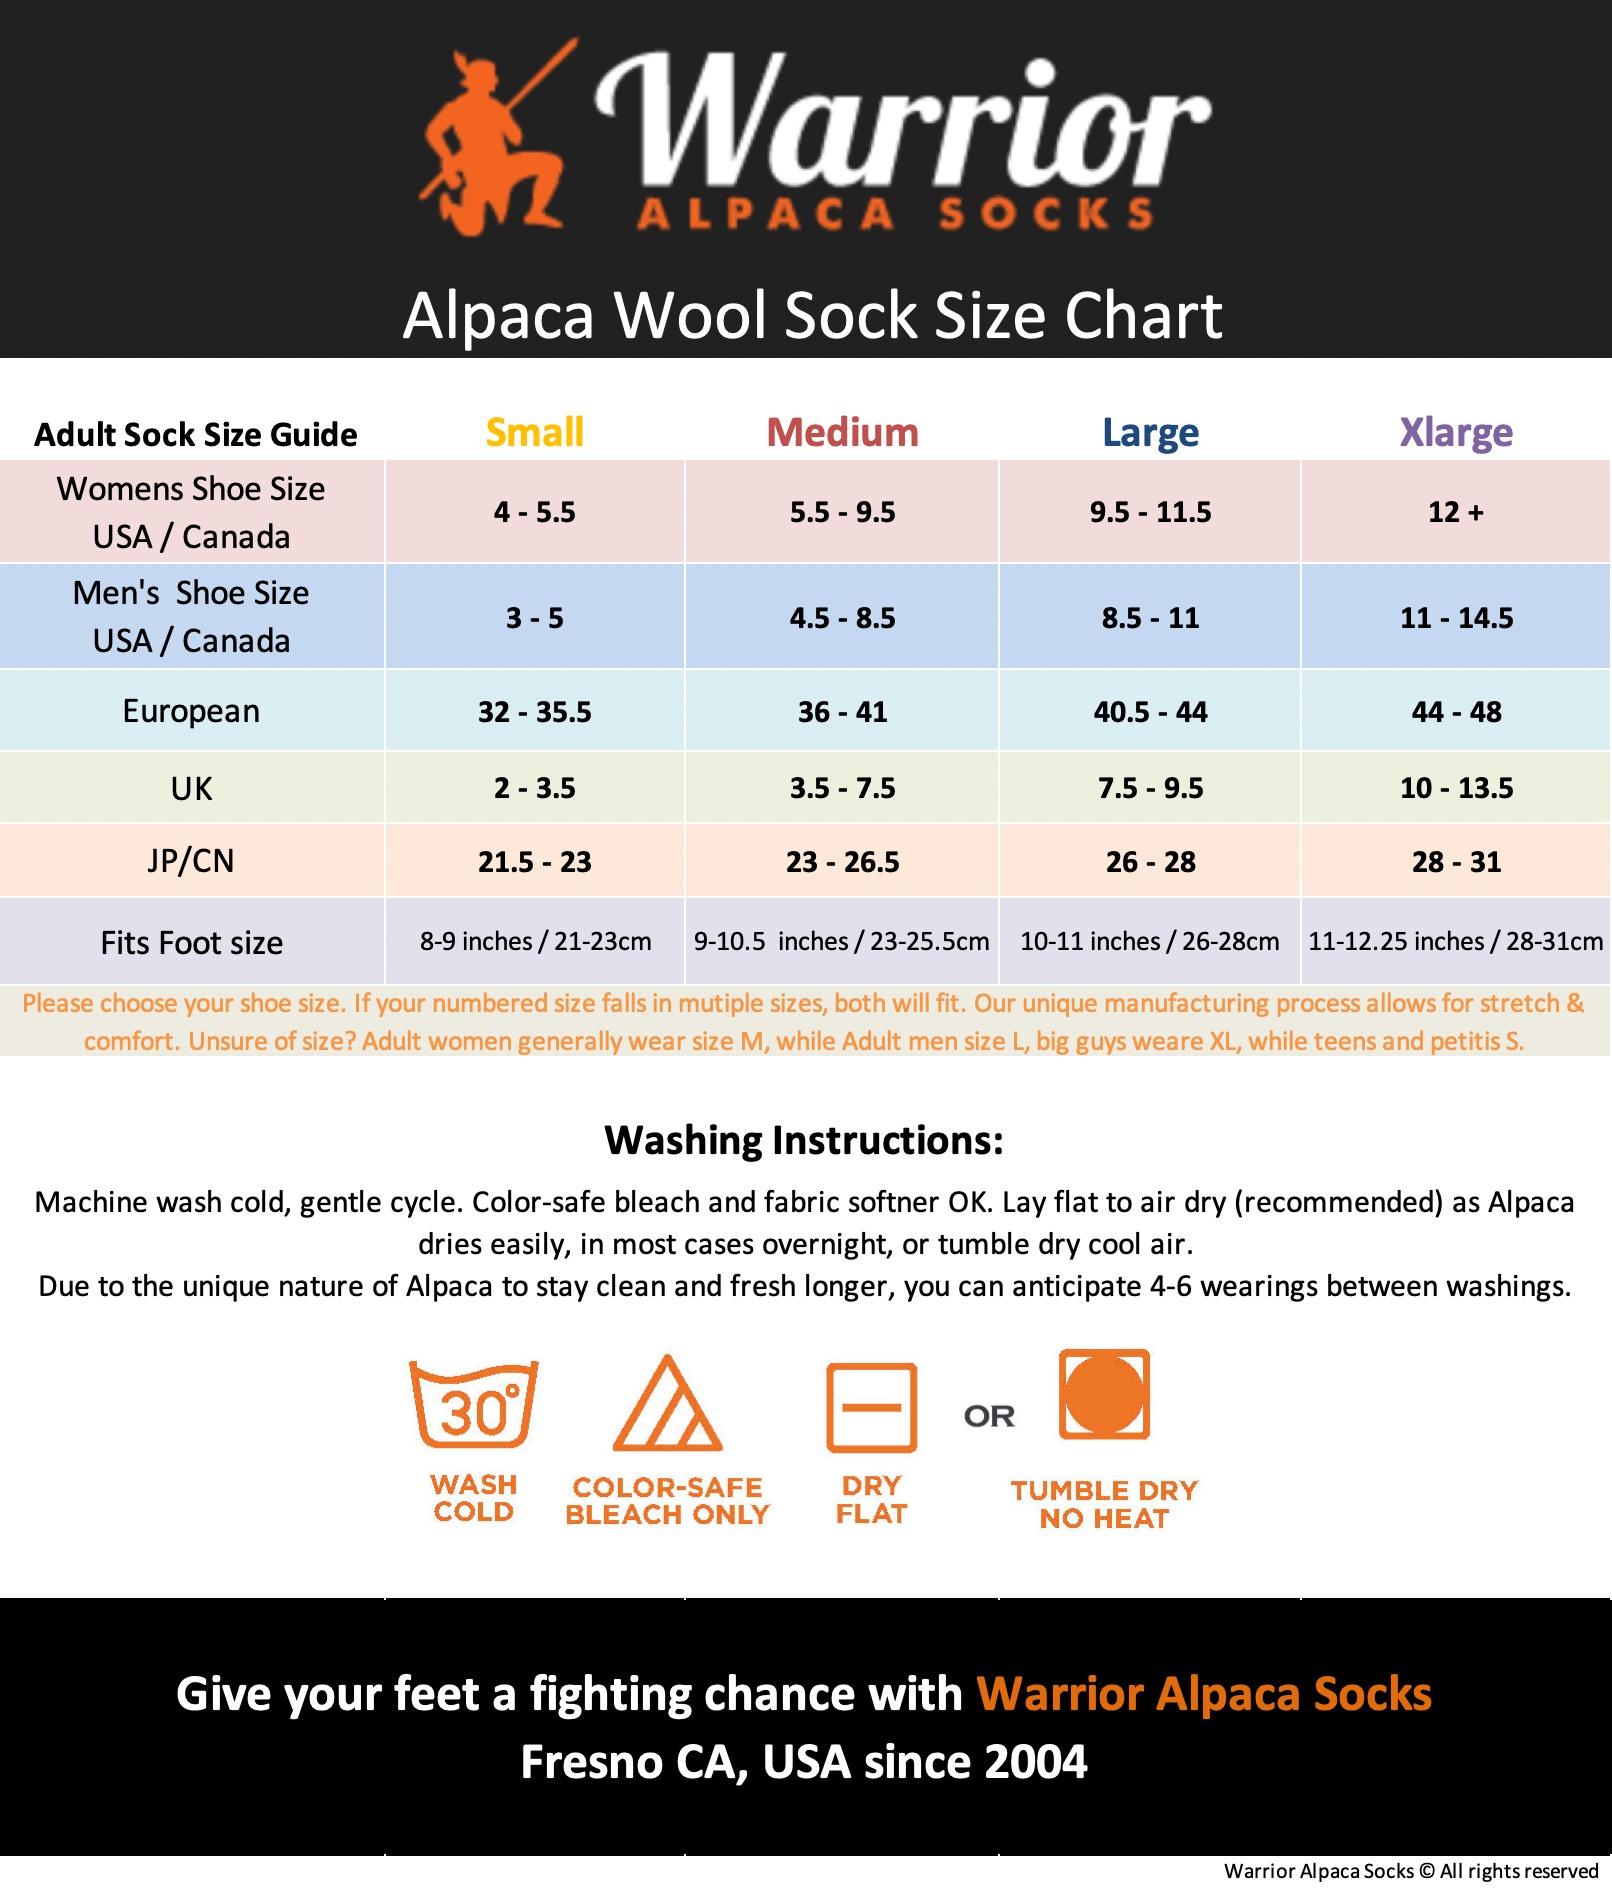 warrior-alpaca-socks-adult-size-chart-2020.jpeg